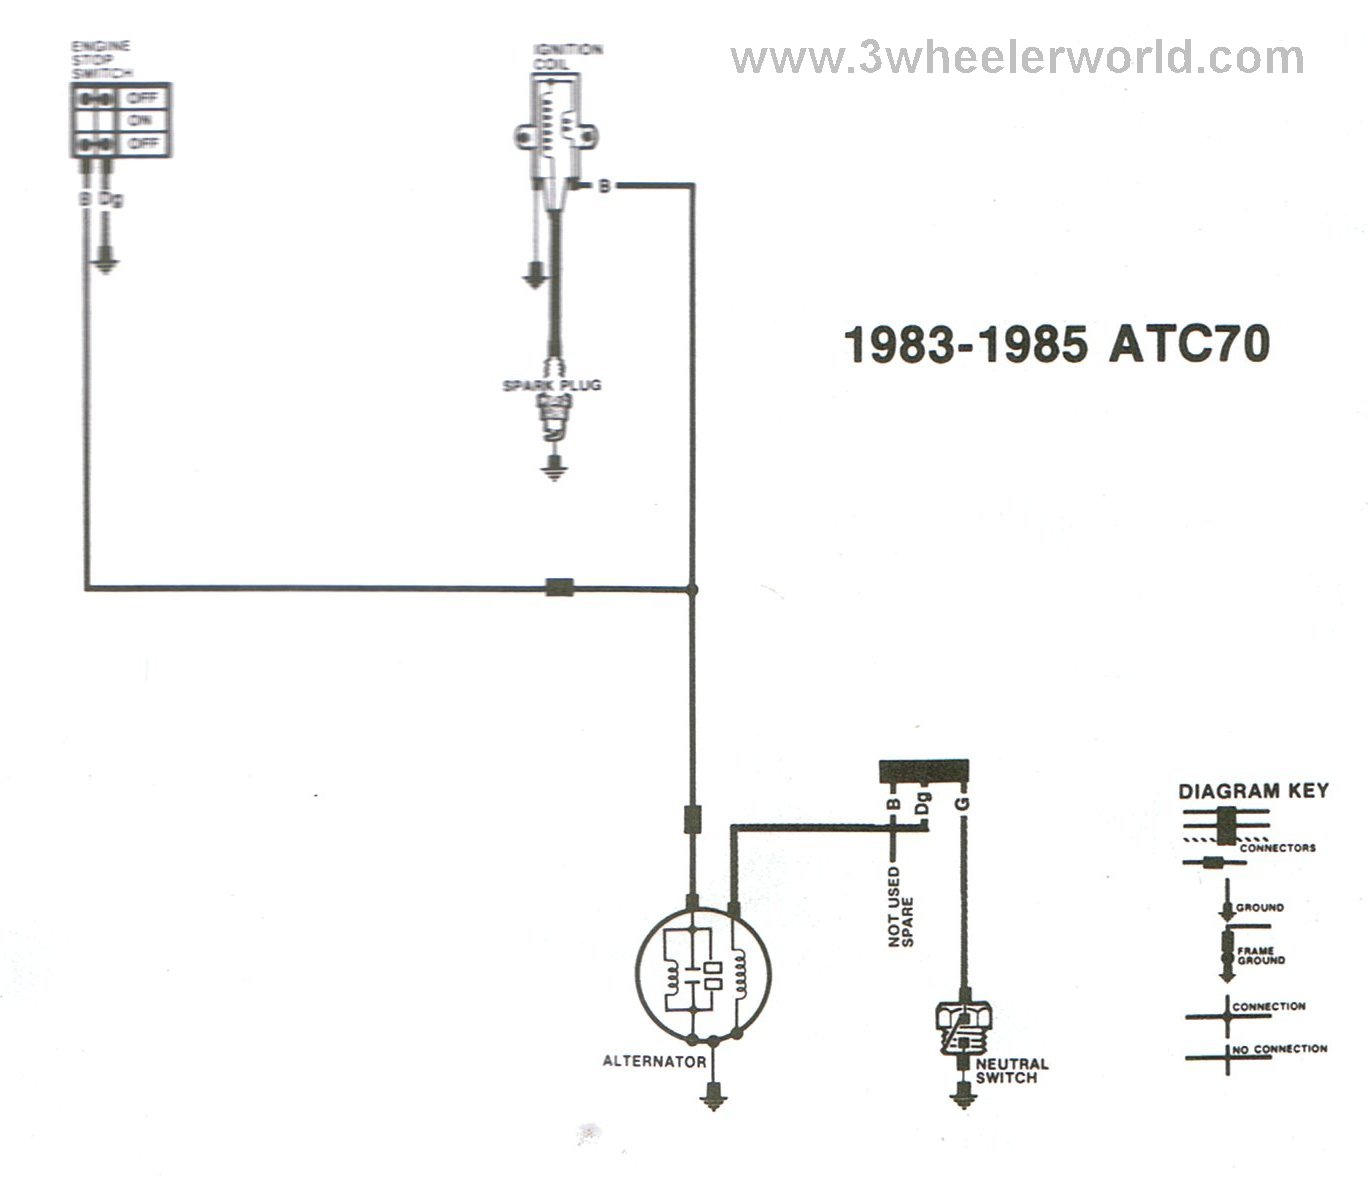 1977 Honda Atc90 Wiring Diagram Electrical House 1970 Z50 3 Wheeler World Tech Help Diagrams Rh 3wheelerworld Com Xr75